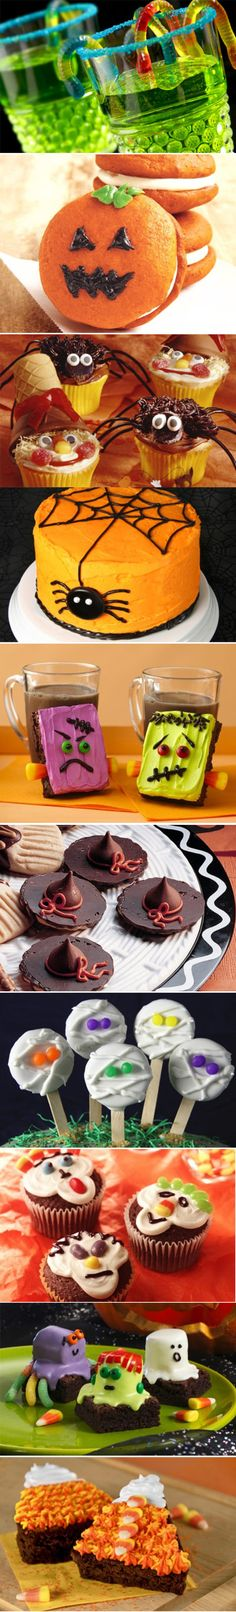 Tons of Halloween Treats! This will come in handy for the Bywater Girls' Halloween Night! :)